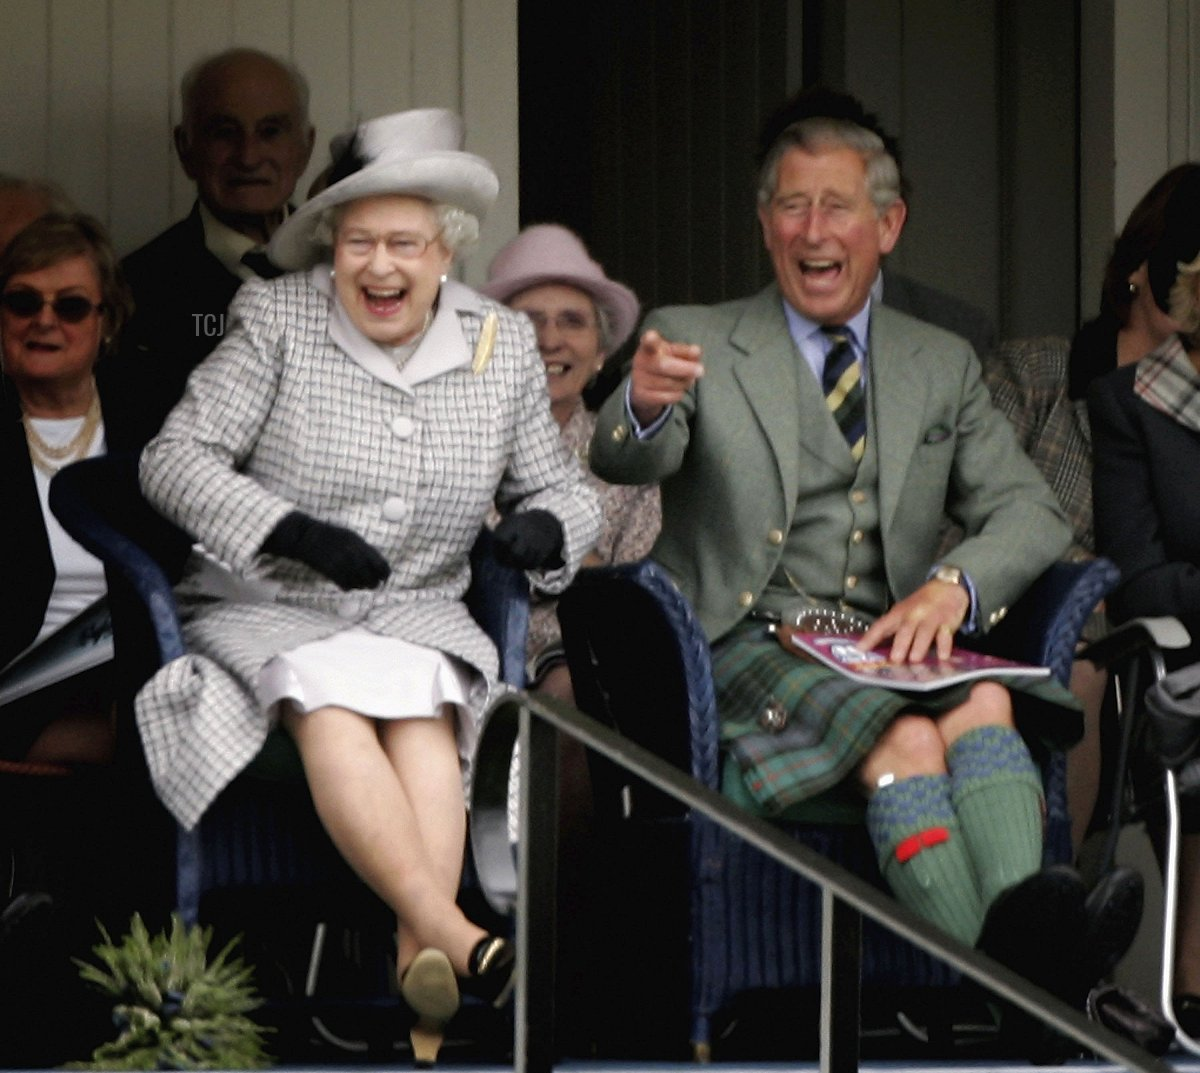 Queen Elizabeth II and Prince Charles, The Prince of Wales laugh as they watch competitors during the Braemar Gathering at the Princess Royal and Duke of Fife Memorial Park on September 2, 2006 in Braemar, Scotland